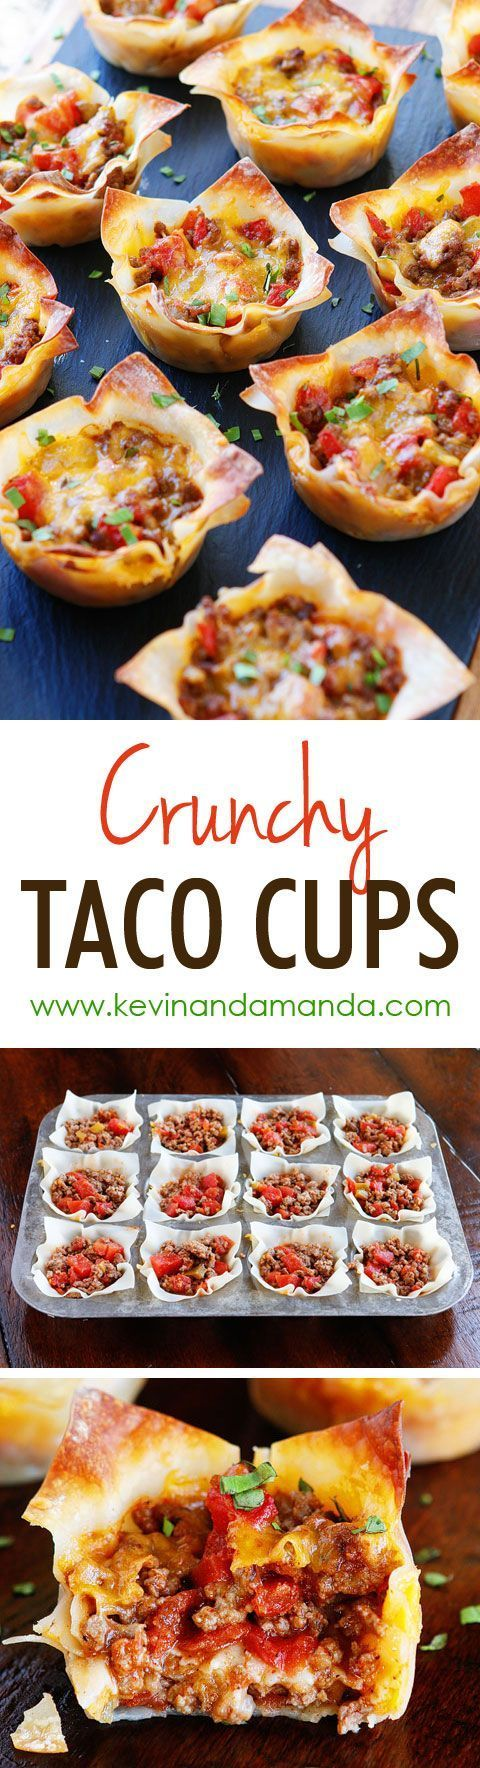 How fun are these little Taco Cups made in a muffin tin?? Kevin LOVED them, and I don't  think I'll ever be able to make tacos another way again! They're layers